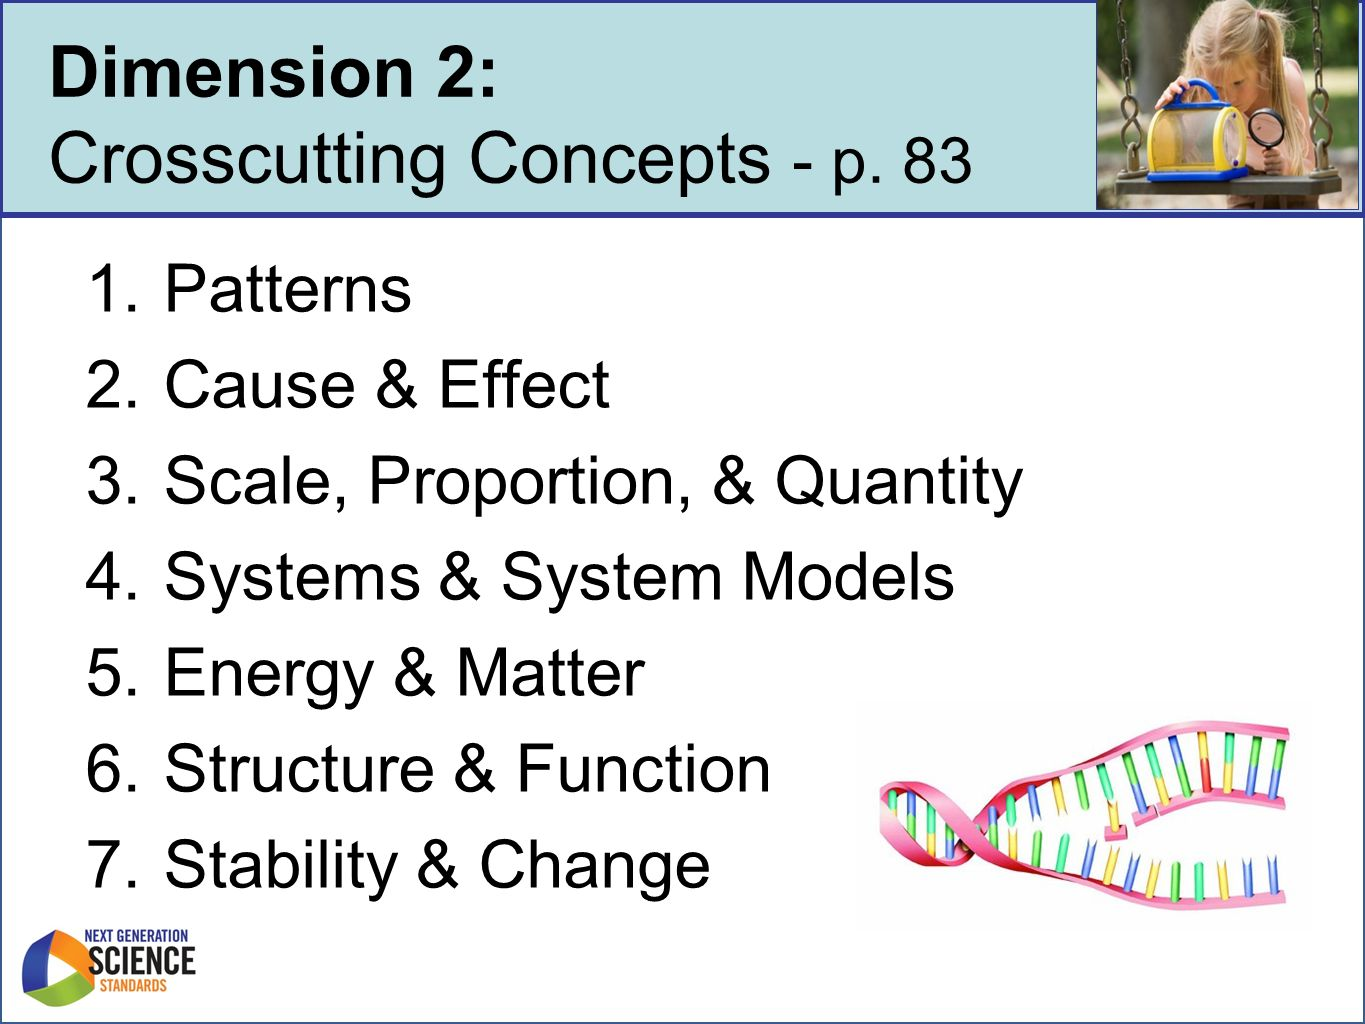 Dimension 2 Crosscutting Concepts